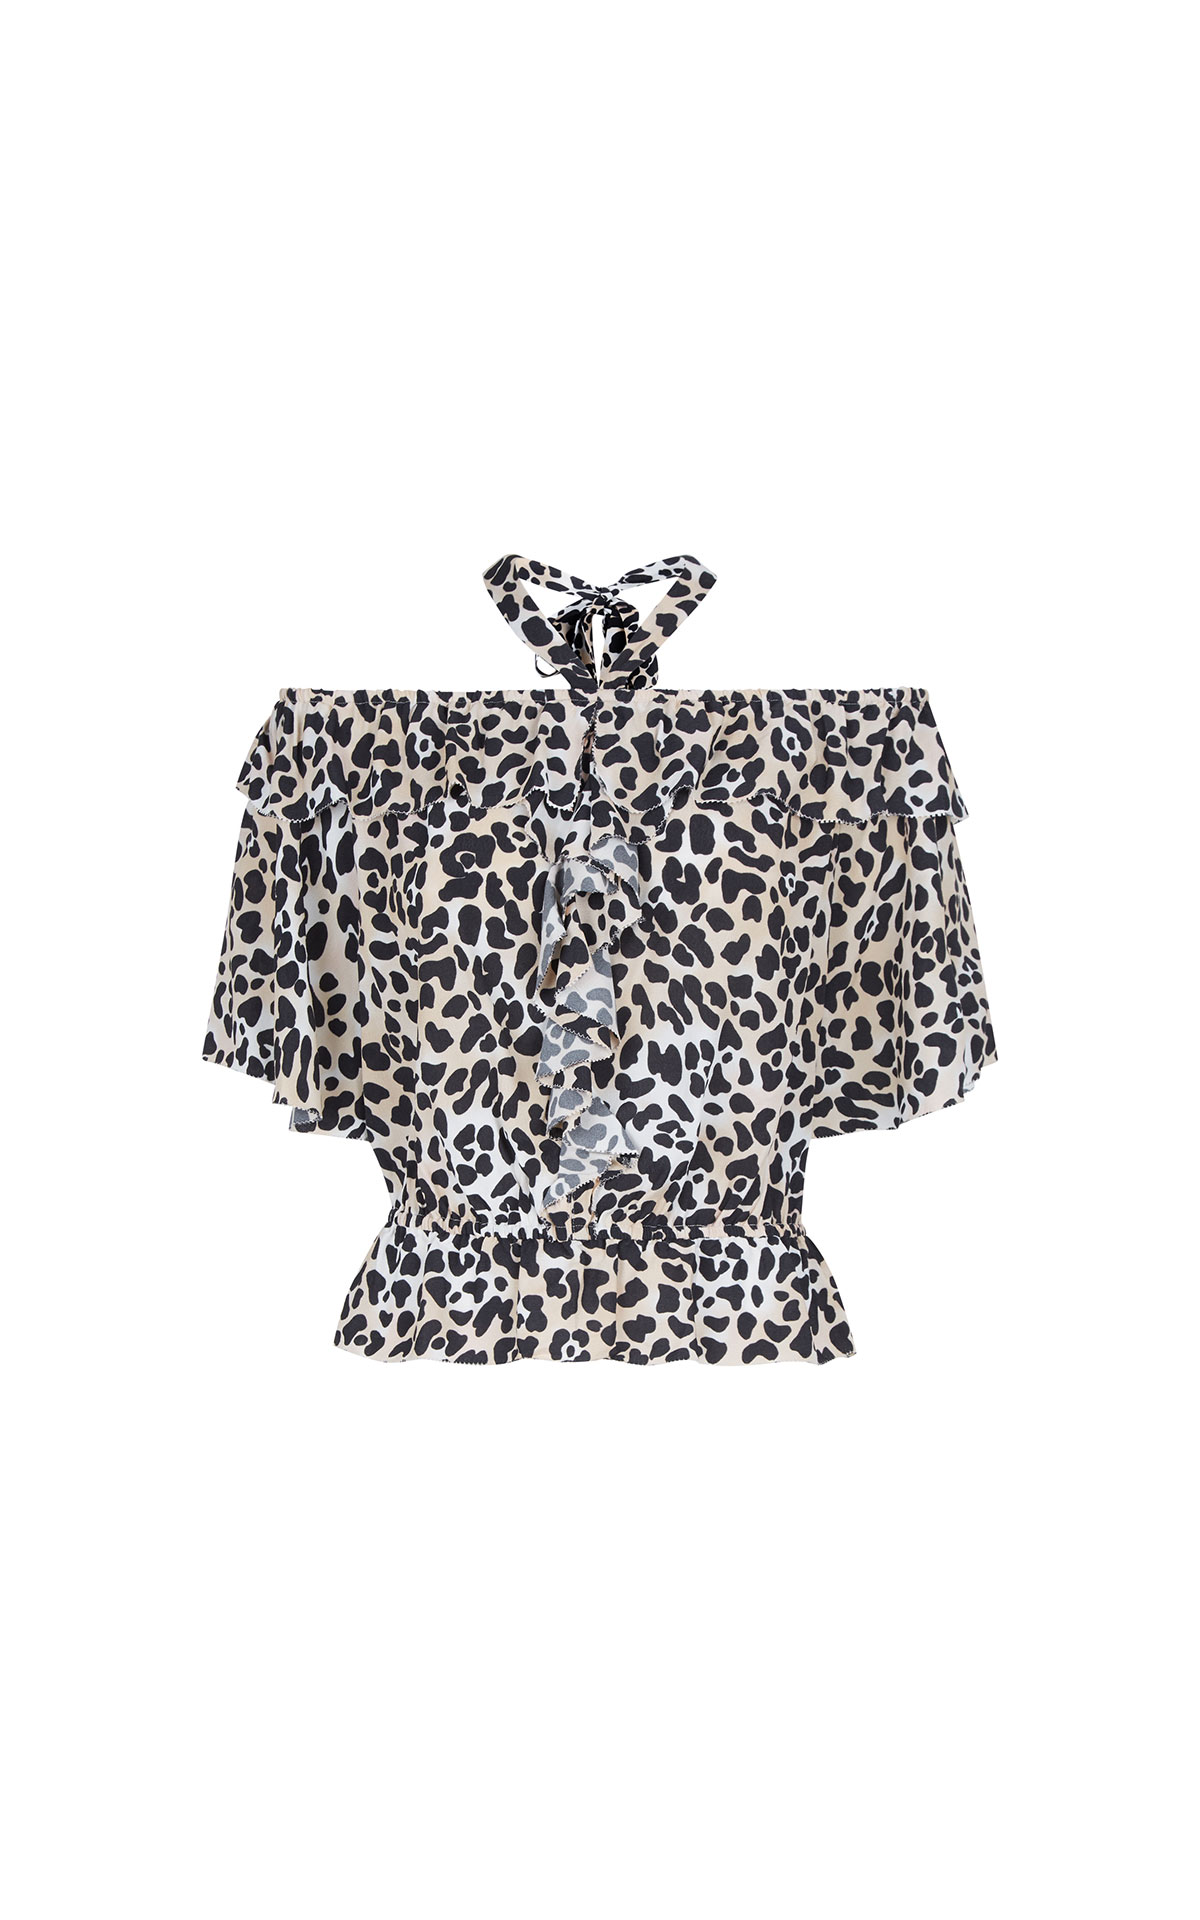 Temperley London Wild cat ruffle blouse from Bicester Village